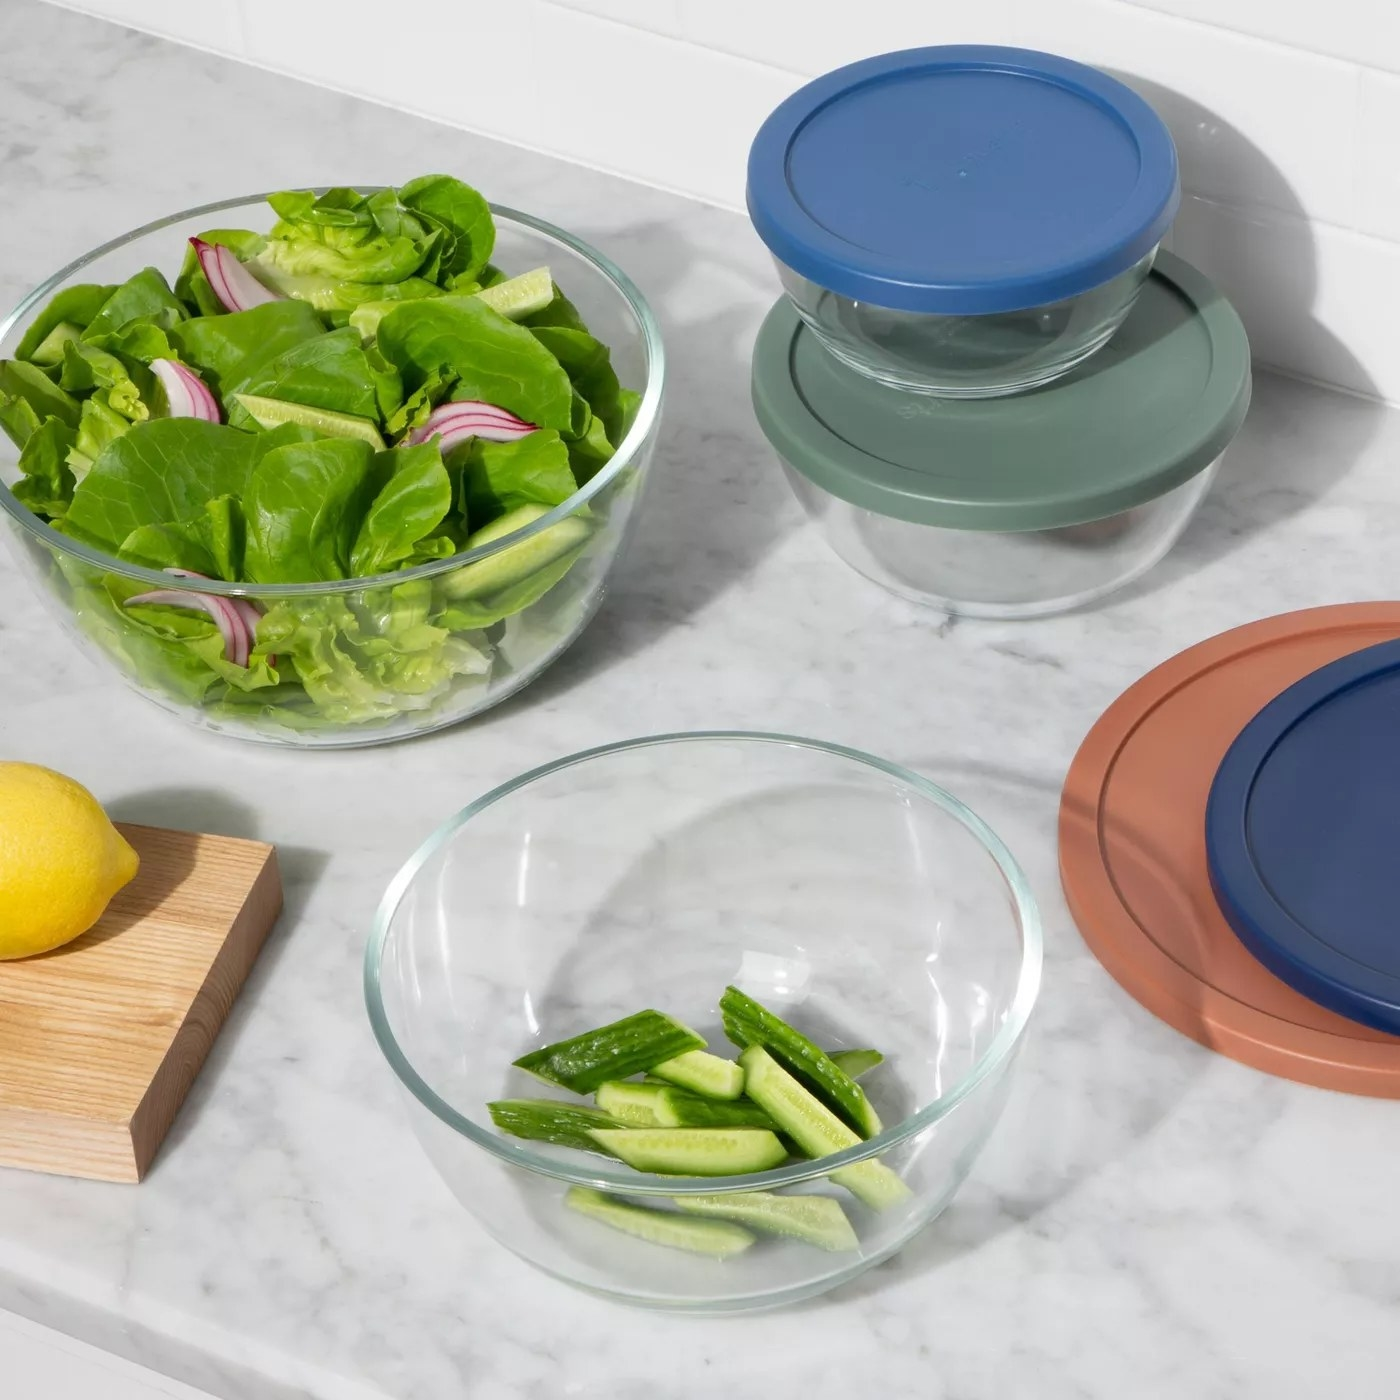 the glass bowls on a counter with veggies inside